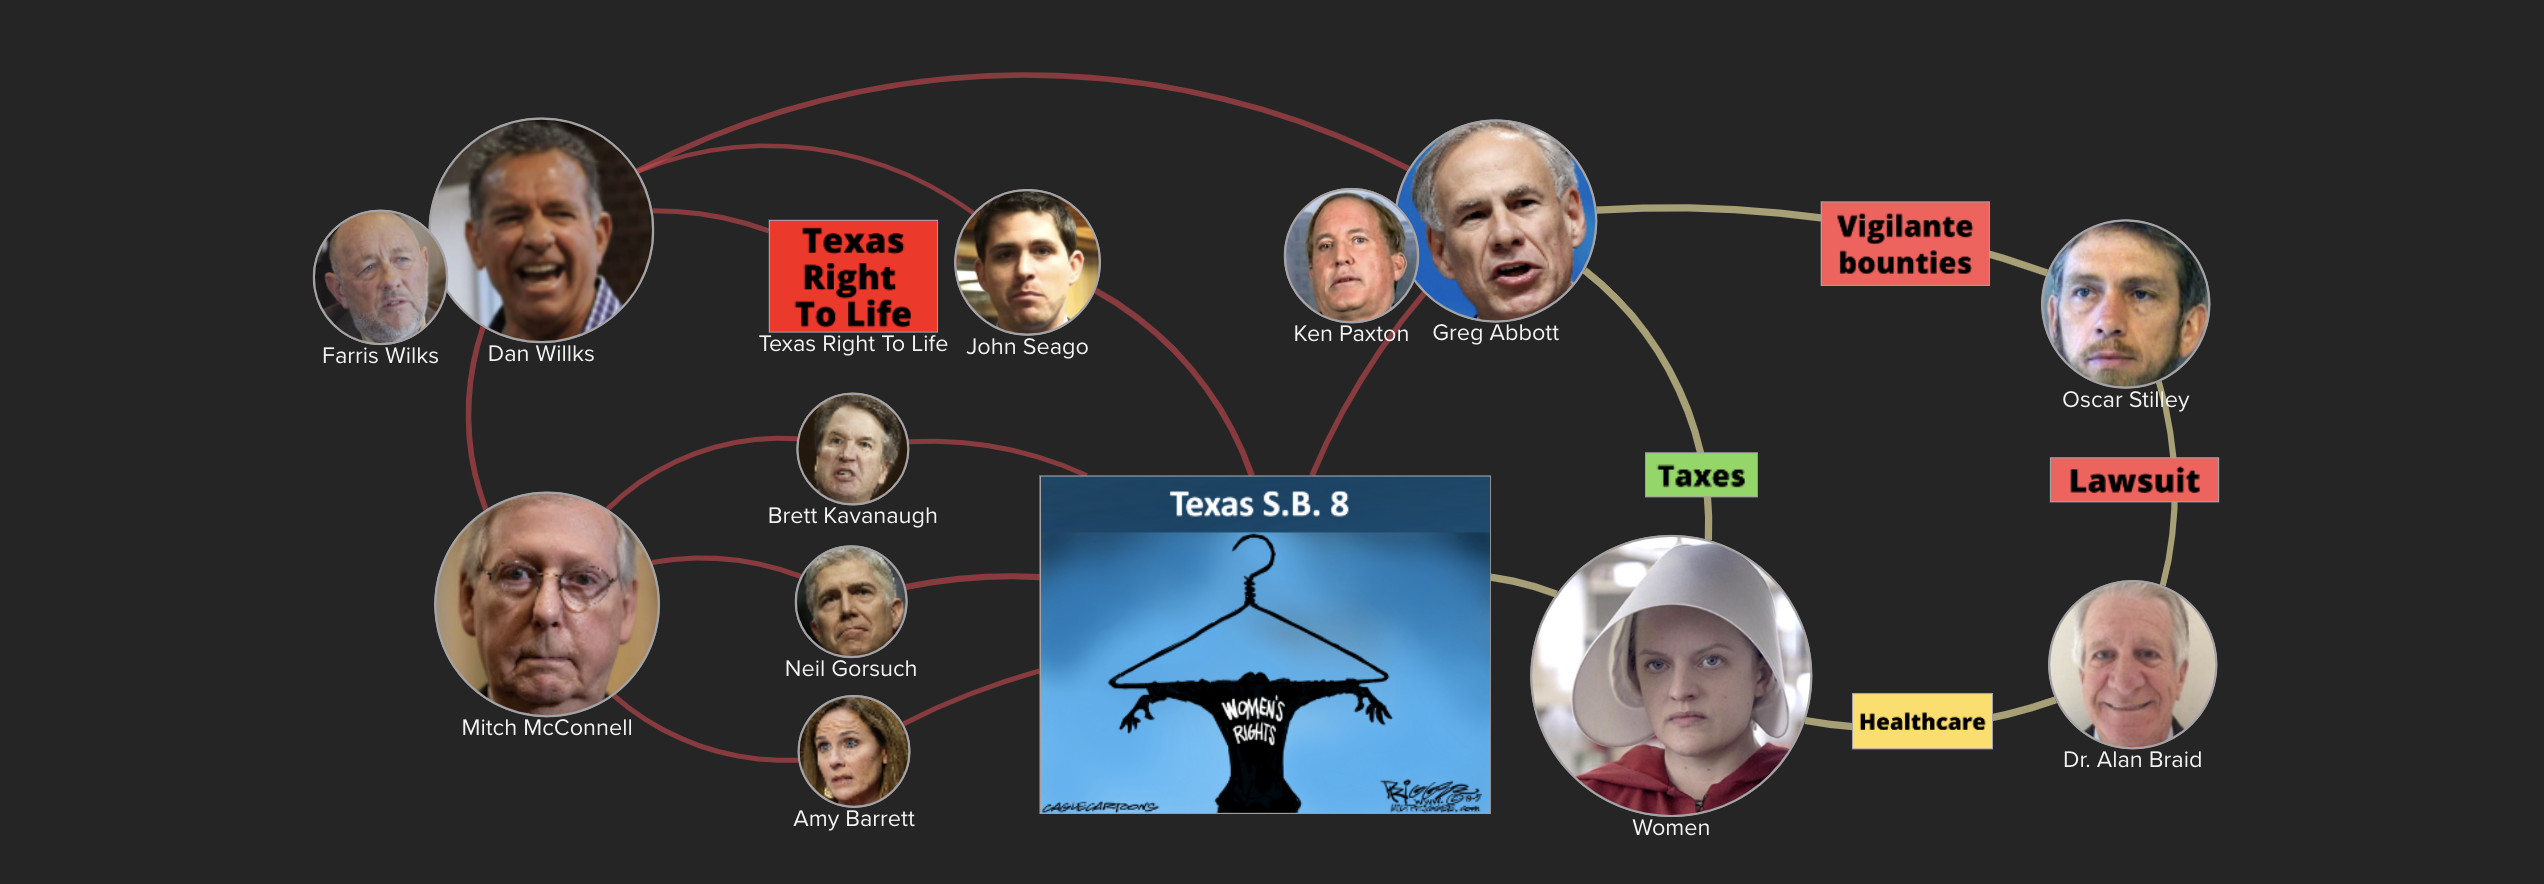 Texas S.B. 8 provides tax payer funded bounties to abortion bounty vigilantes